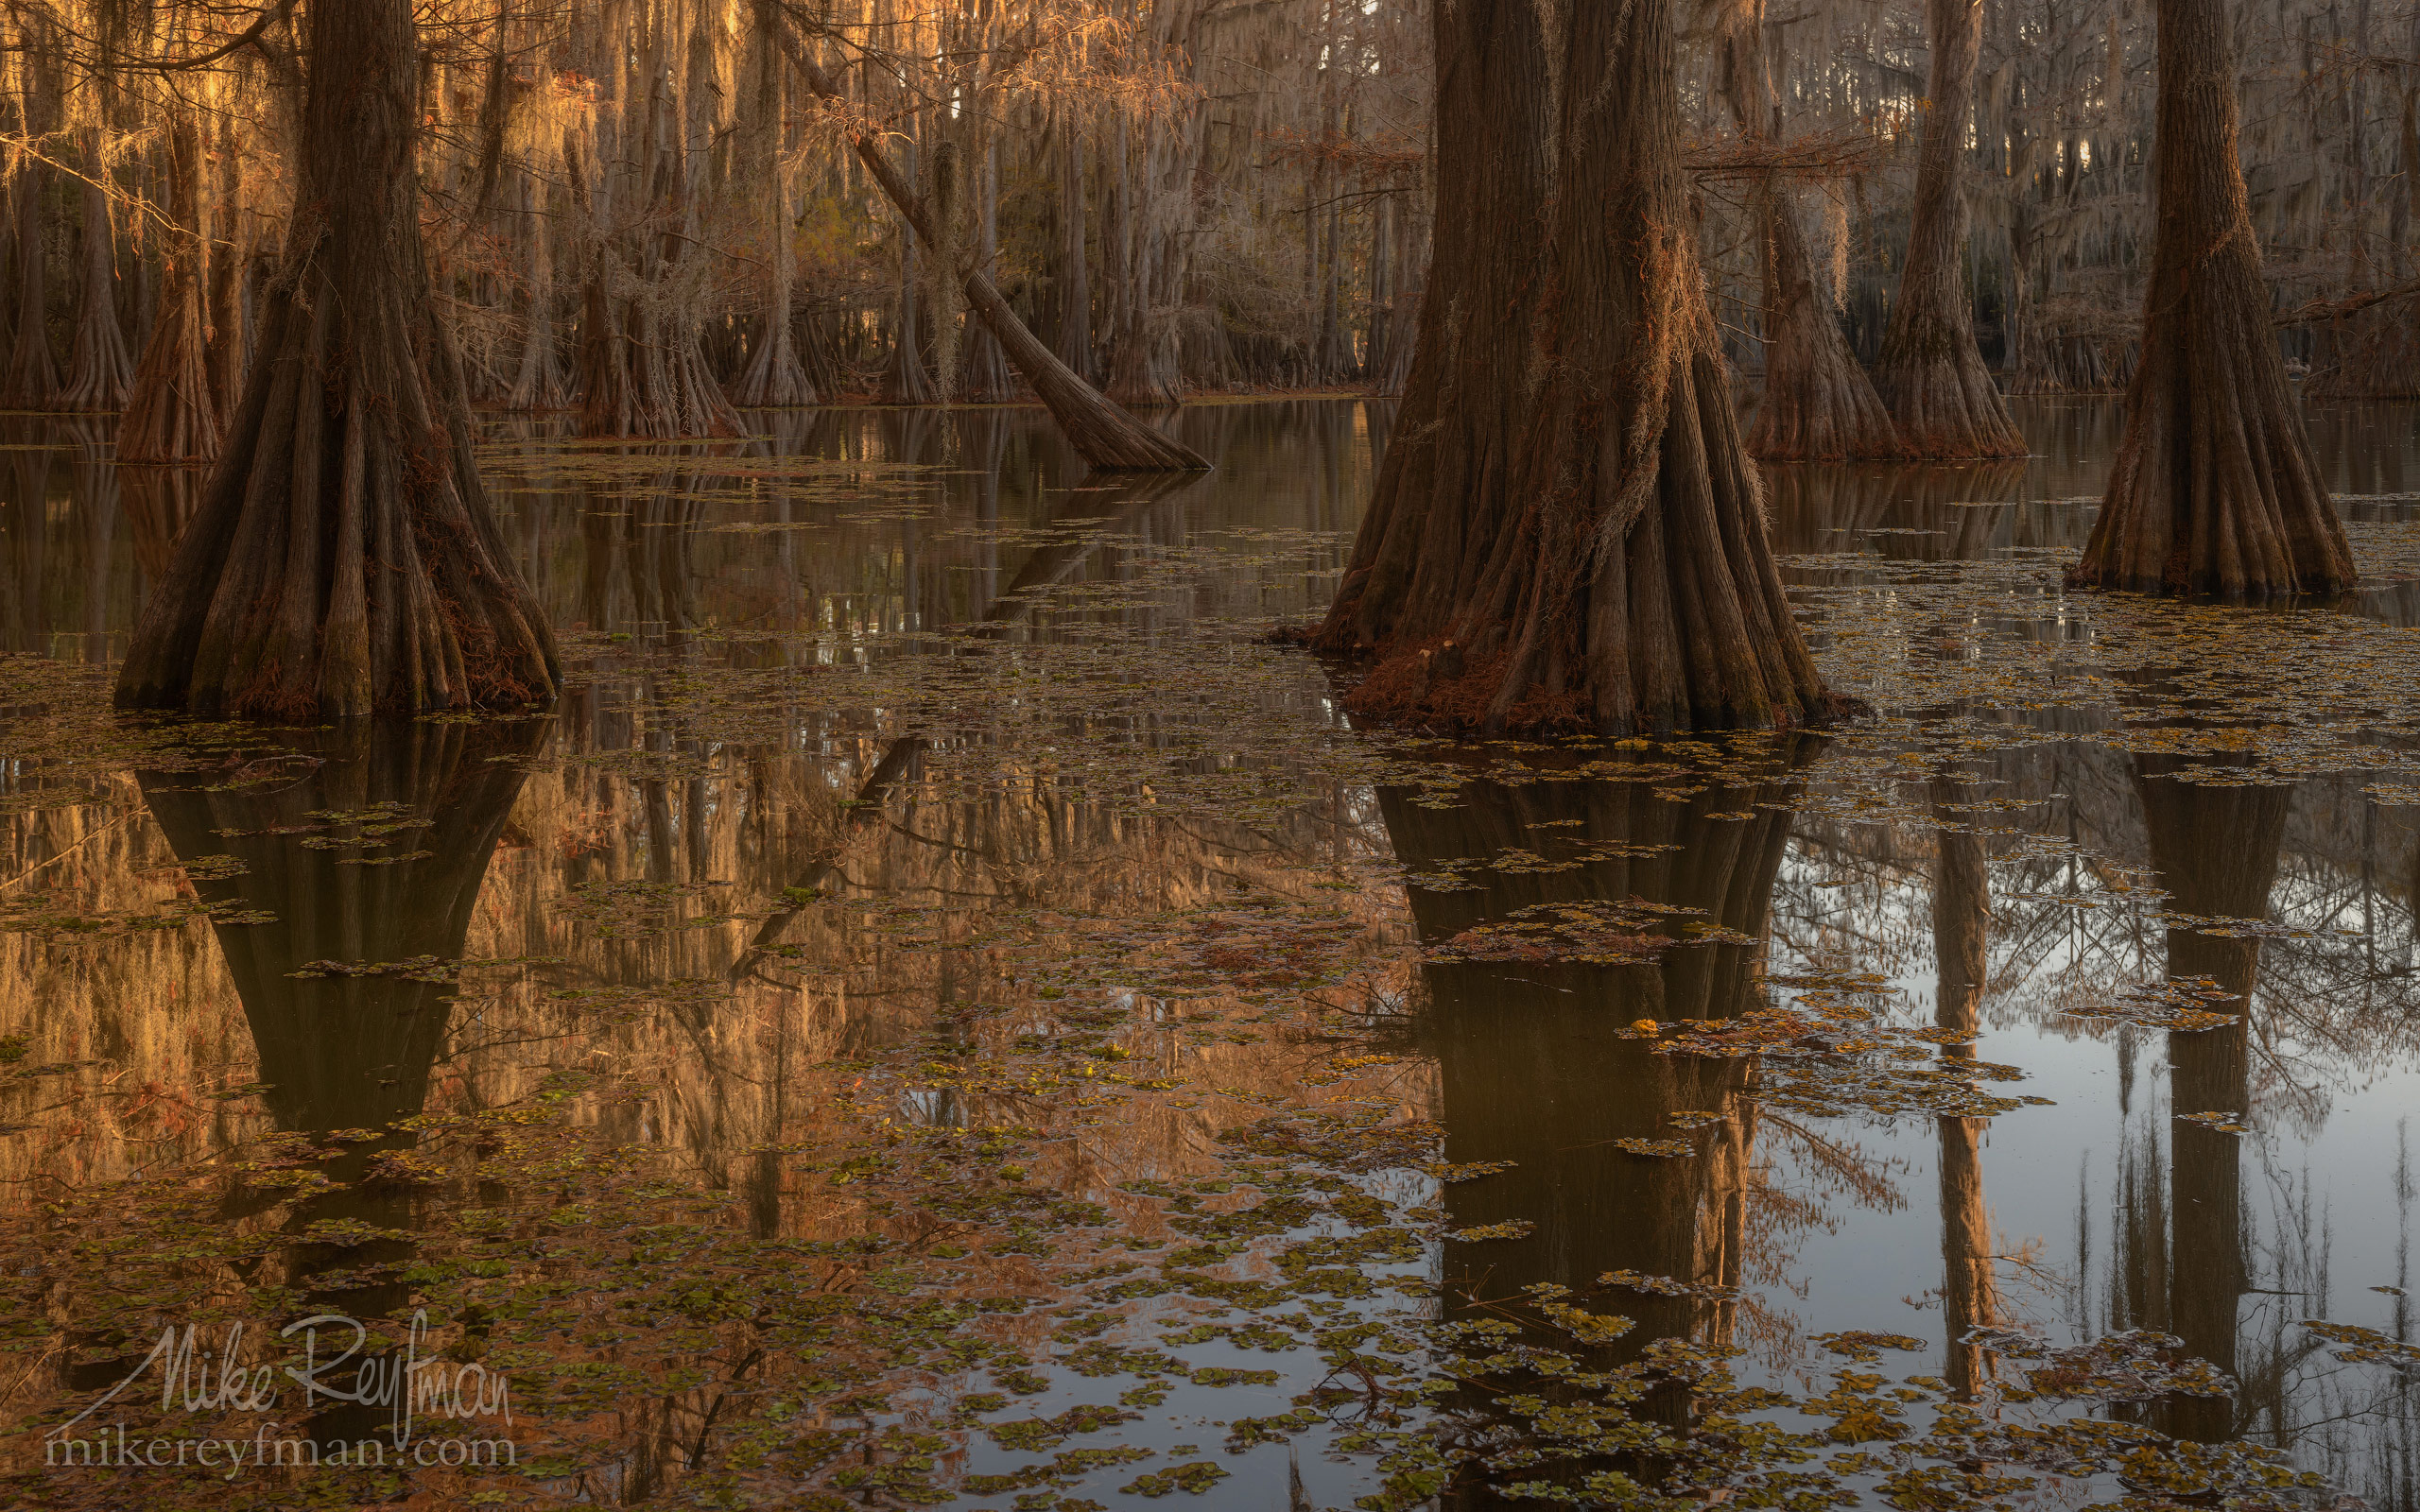 Bald Cypress trees in the swamp. Caddo Lake, Texas, US 009-LT1-50A2800.jpg - Bold Cypress and Tupelo Trees in the swamps of Atchafalaya River Basin. Caddo, Martin and Fousse Lakes. Texas/Louisiana, USA. - Mike Reyfman Photography